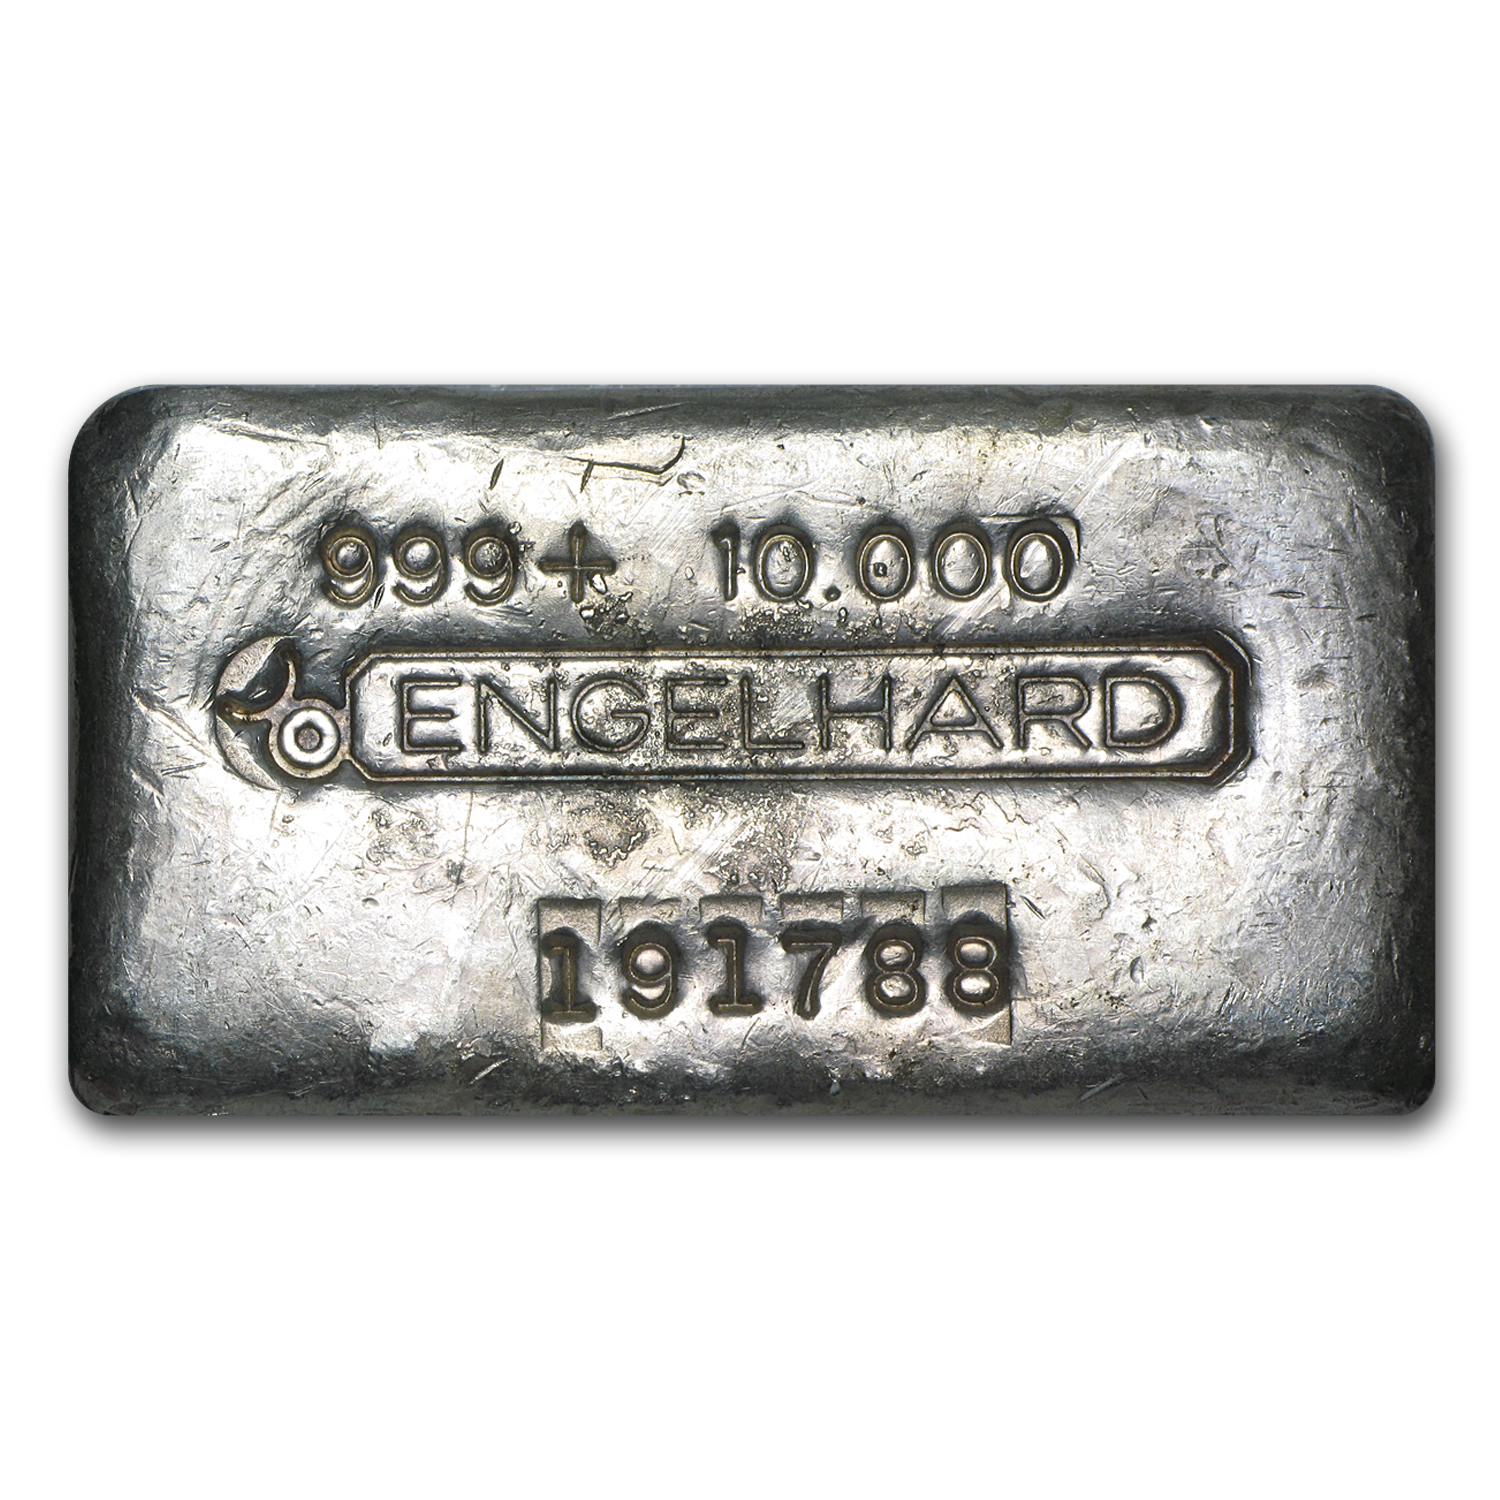 10 oz Silver Bars - Engelhard (Wide/Poured/Bull Logo)